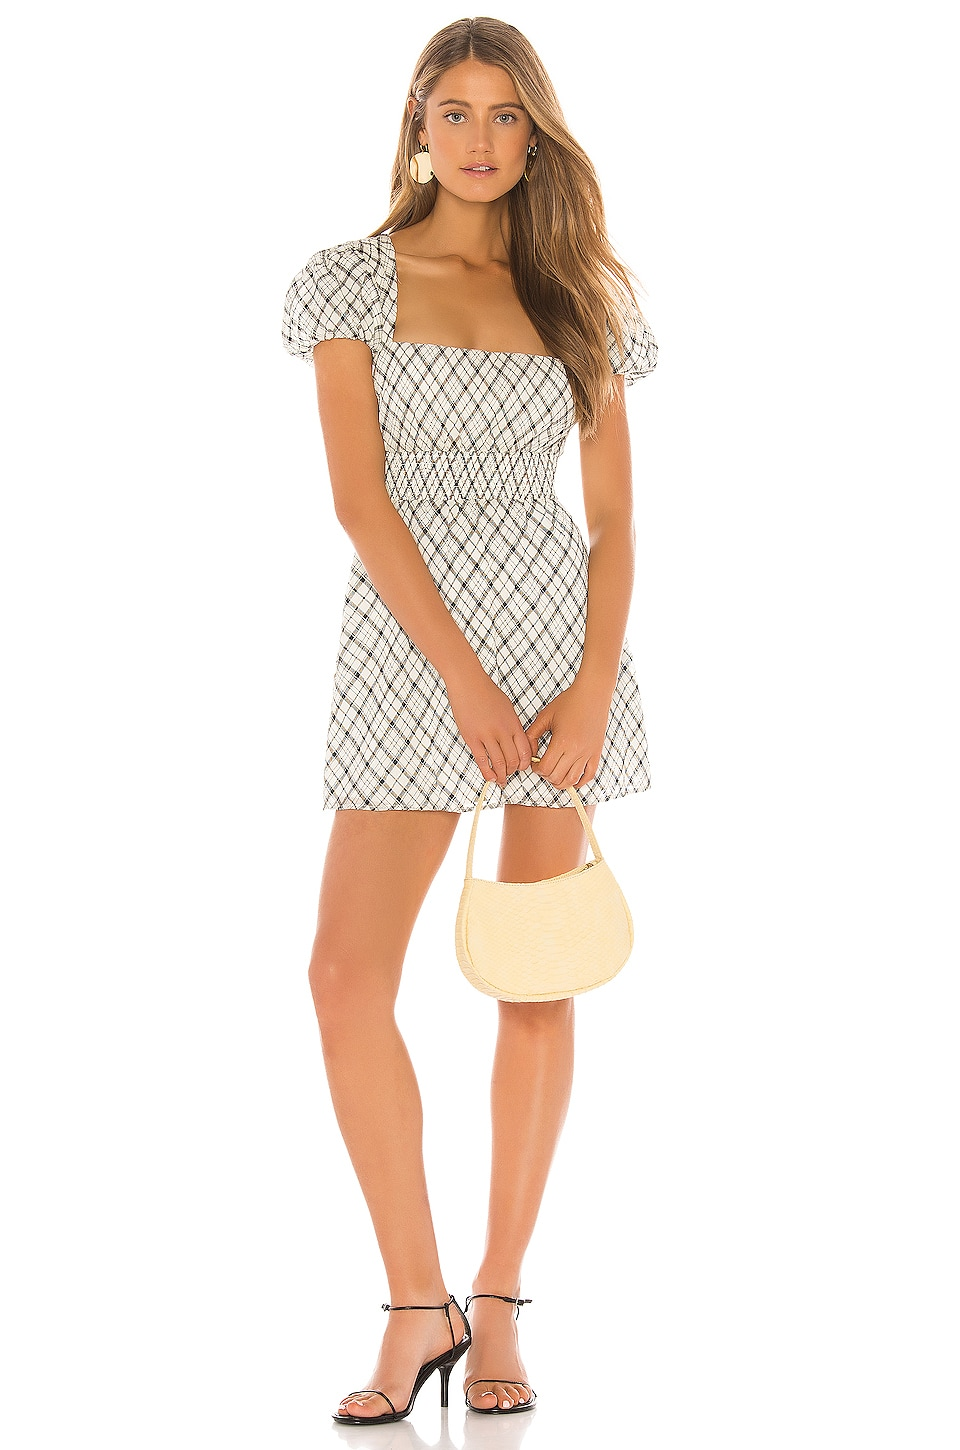 Privacy Please Bethany Dress in Ivory & Black Plaid